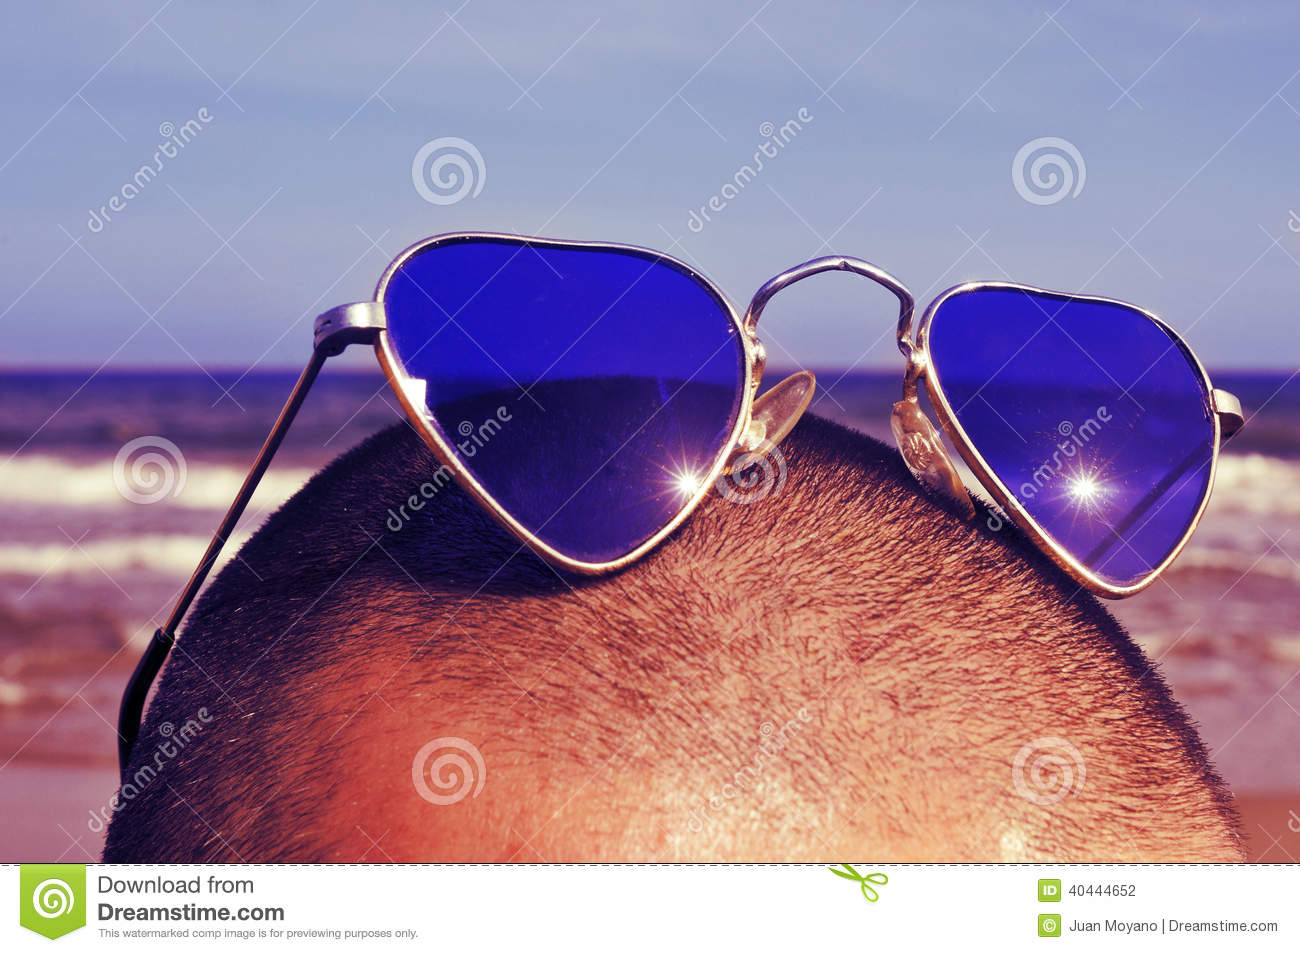 909667b93068 Closeup of the head of a man with heart-shaped sunglasses on the beach